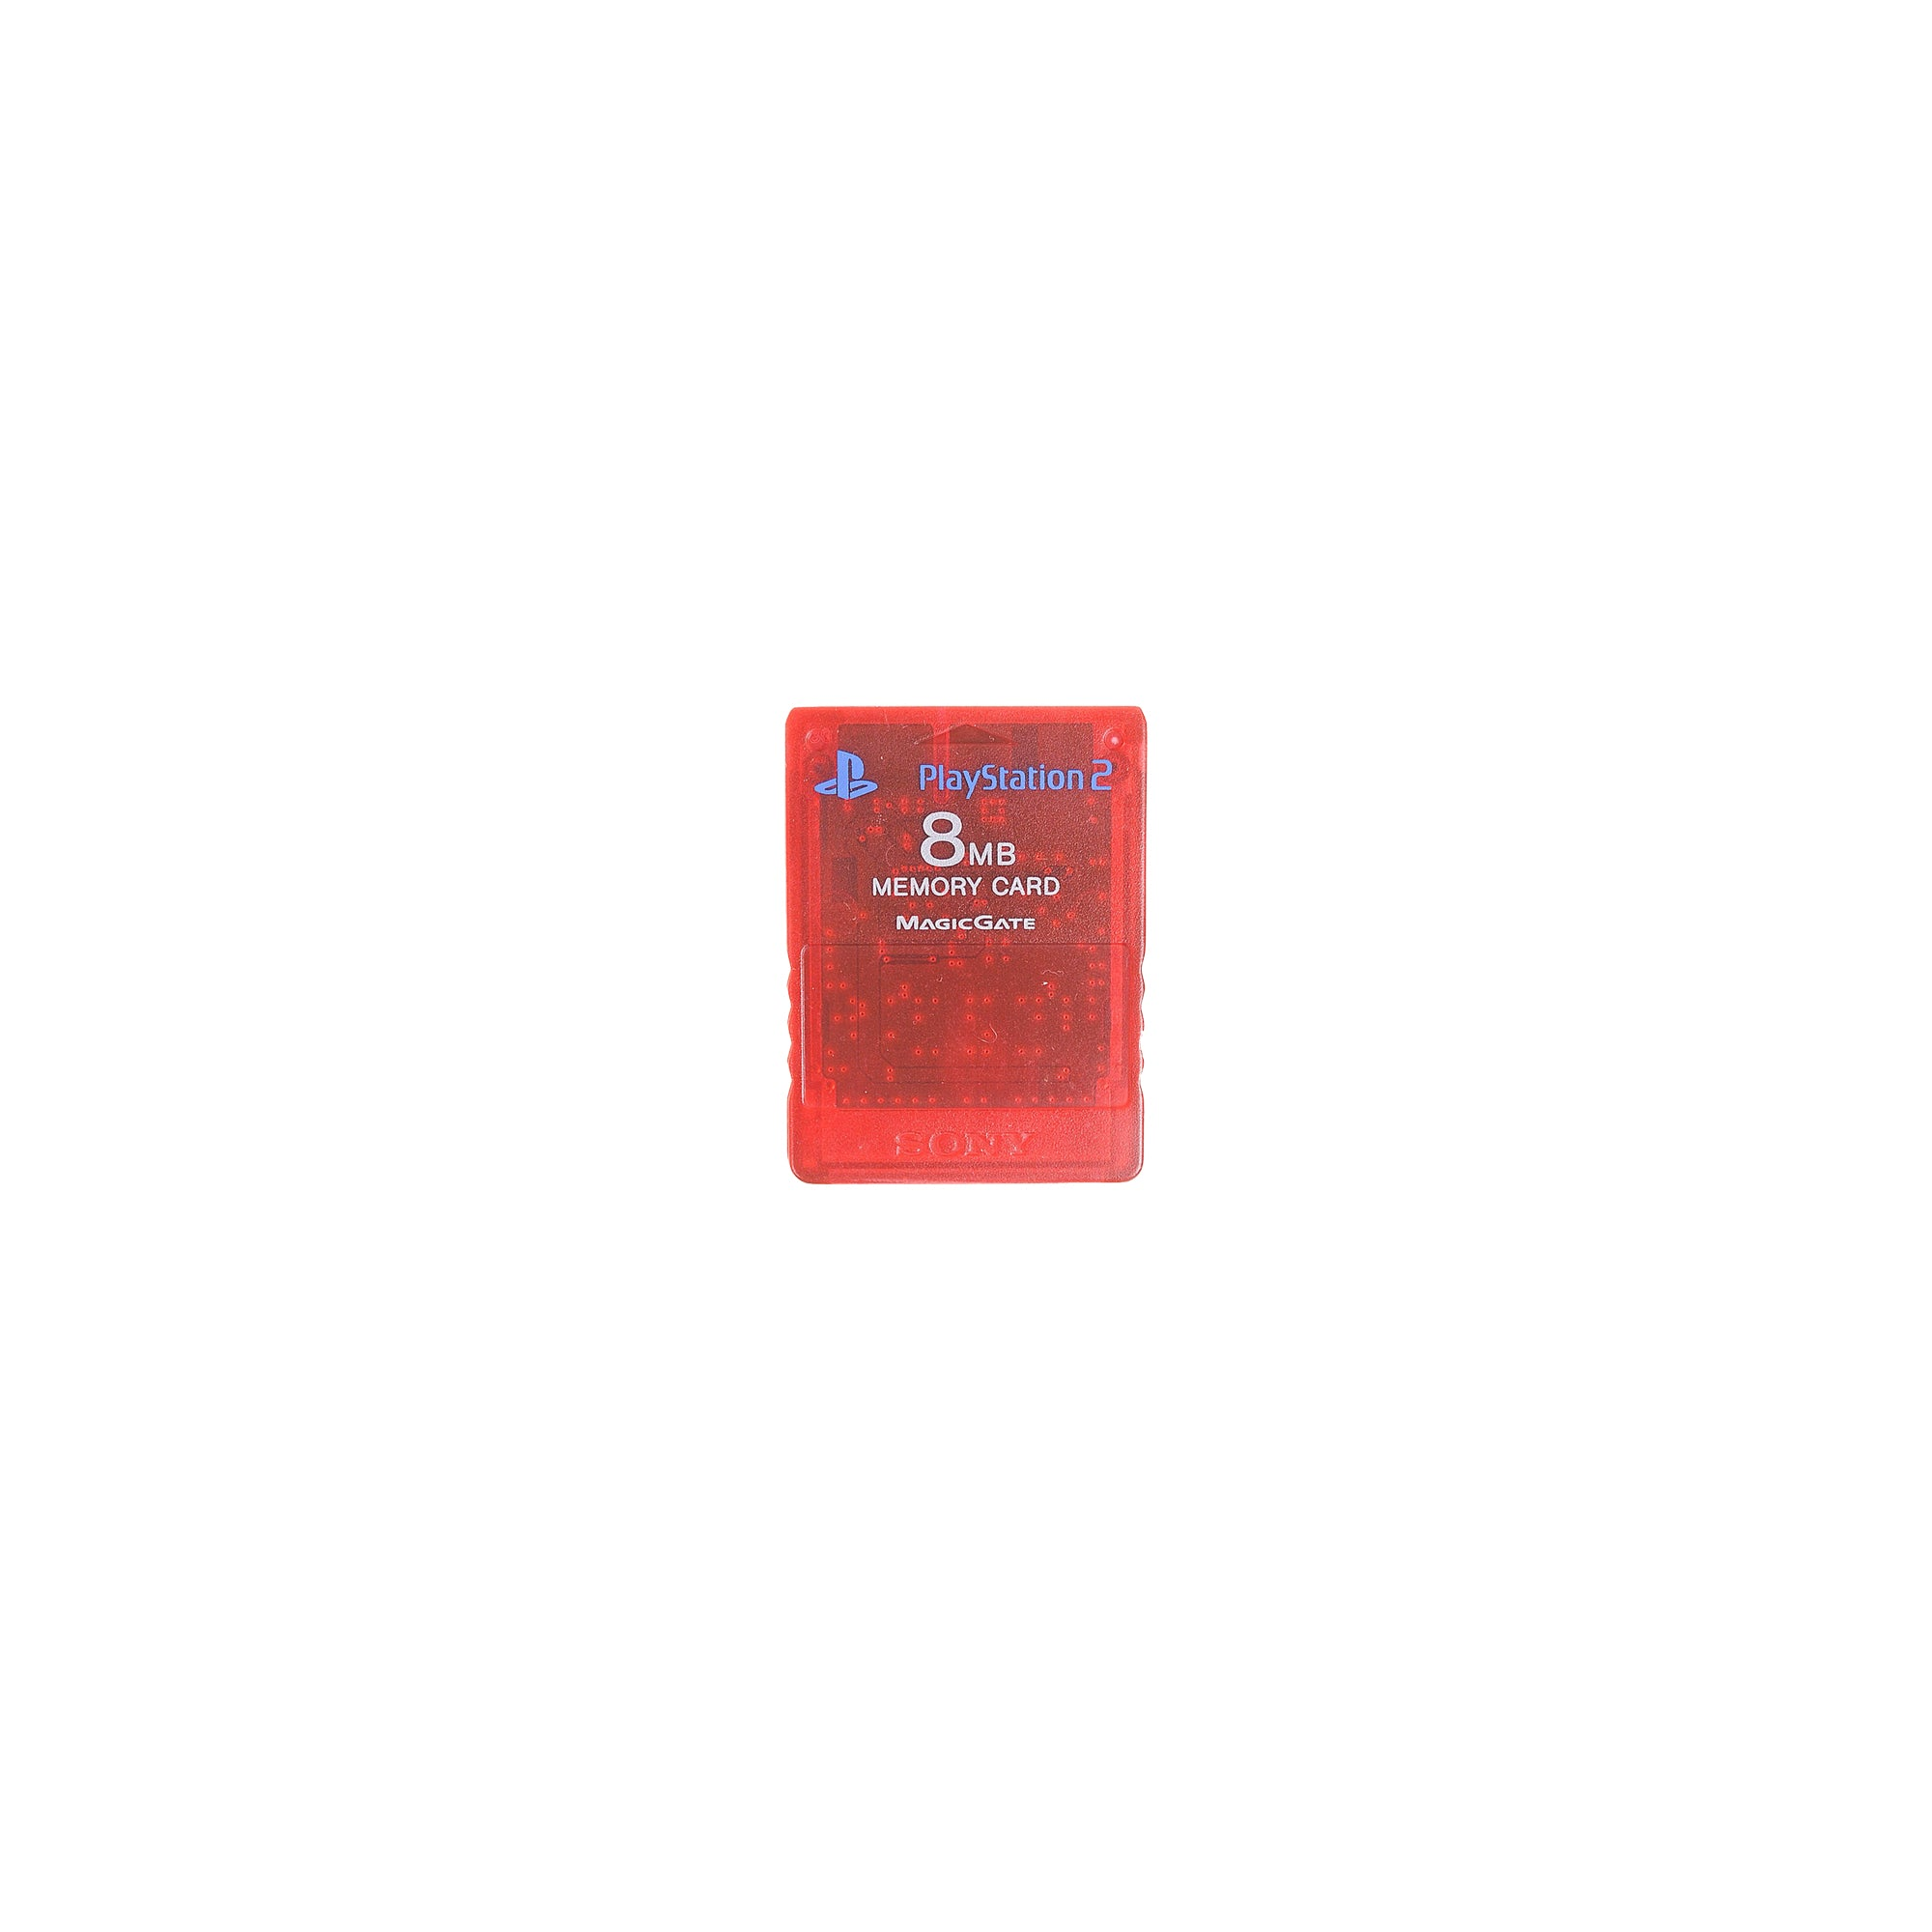 miniature 10 - Sony Playstation 2 Official Memory Card 8MB OEM PS2 Multiple Colors